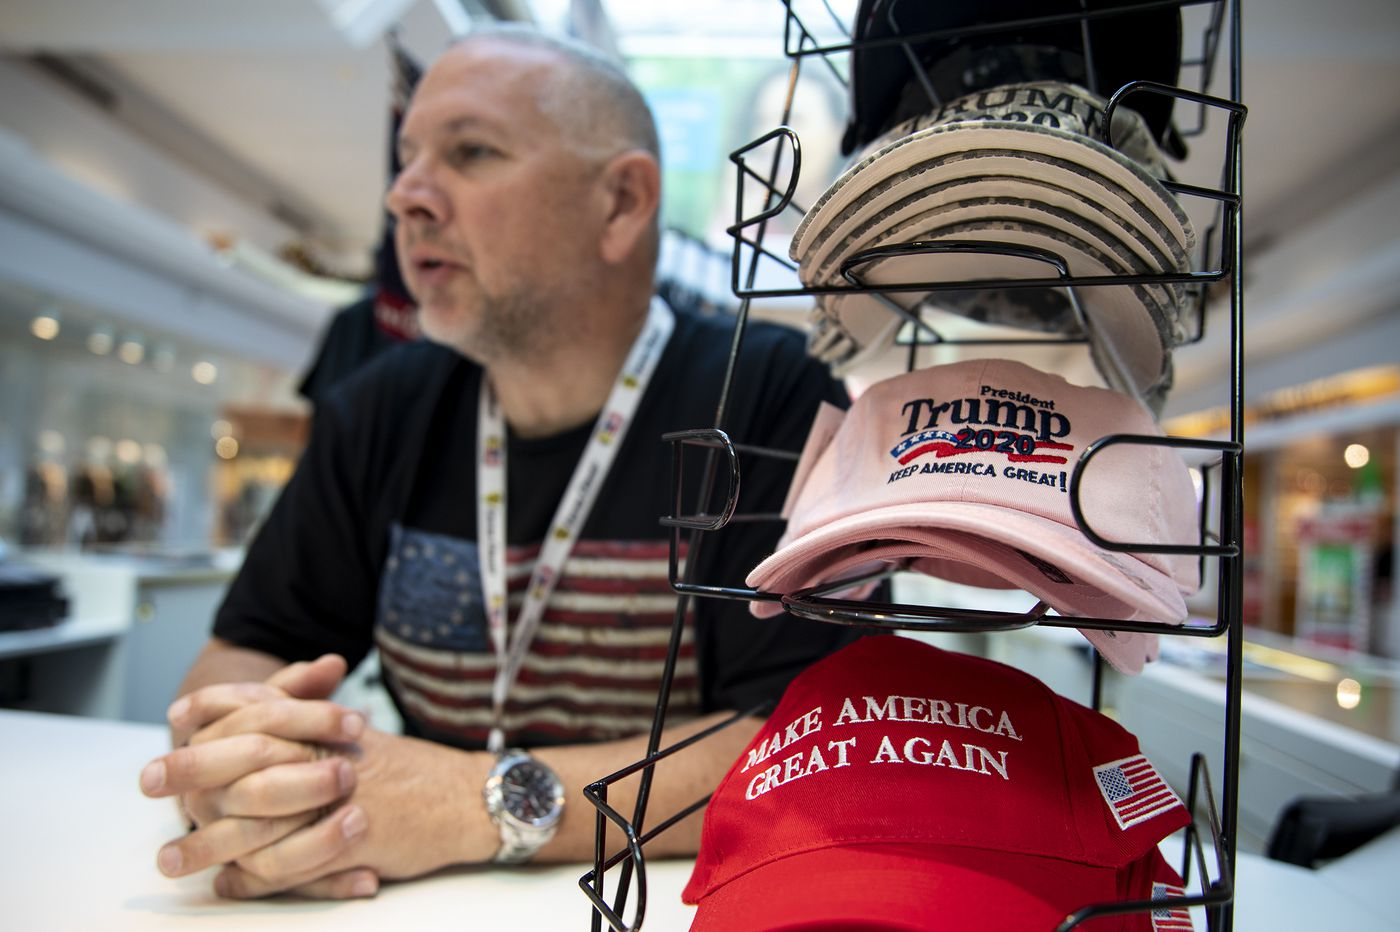 Want to sell Trump merchandise at the mall? Better get some Bernie Sanders shirts, too. | Clout